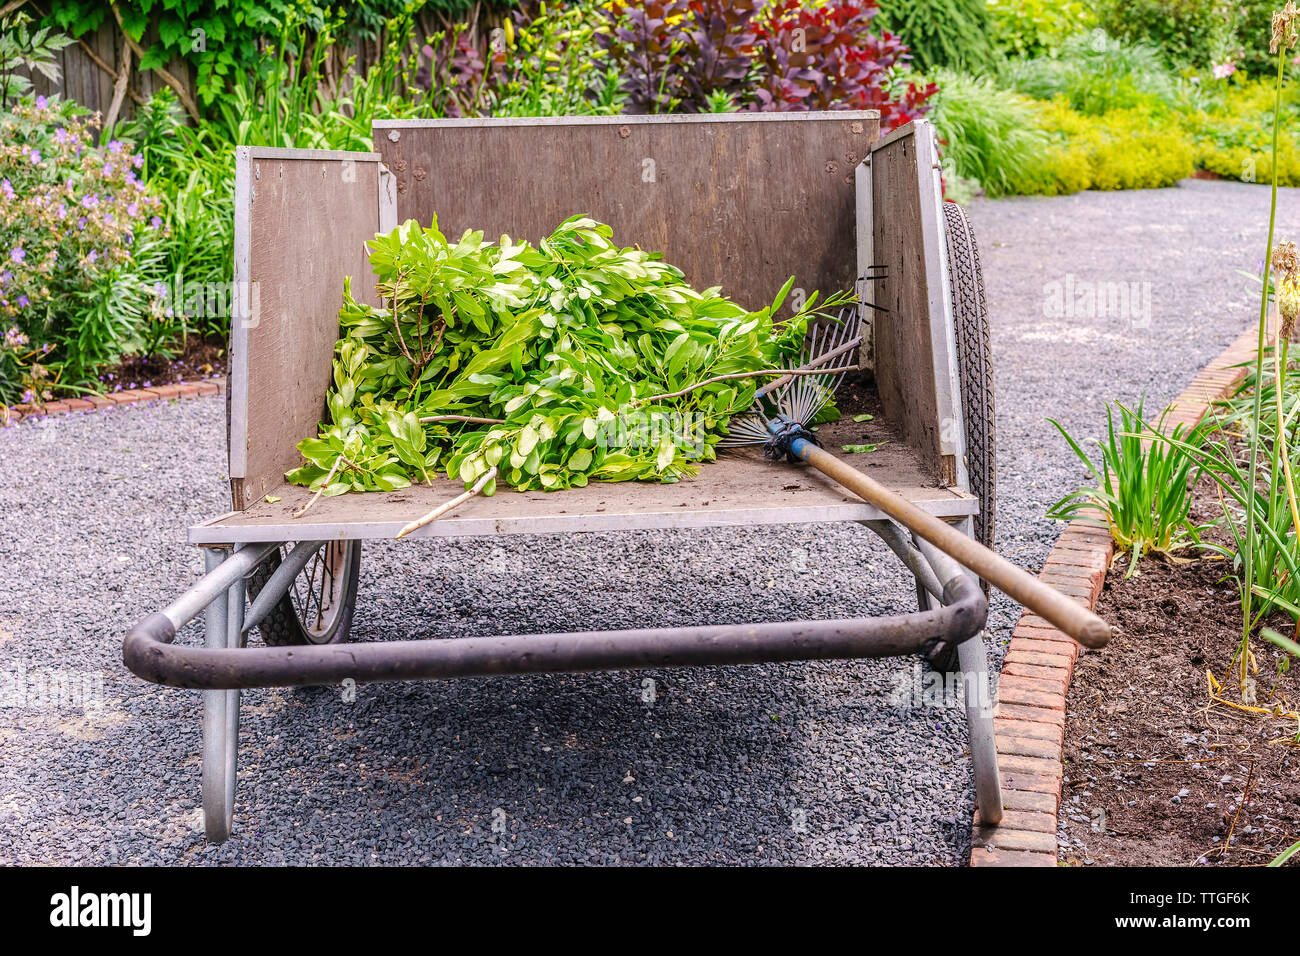 Handcart with rake and pile of green cuttings on garden path in summer - Stock Image